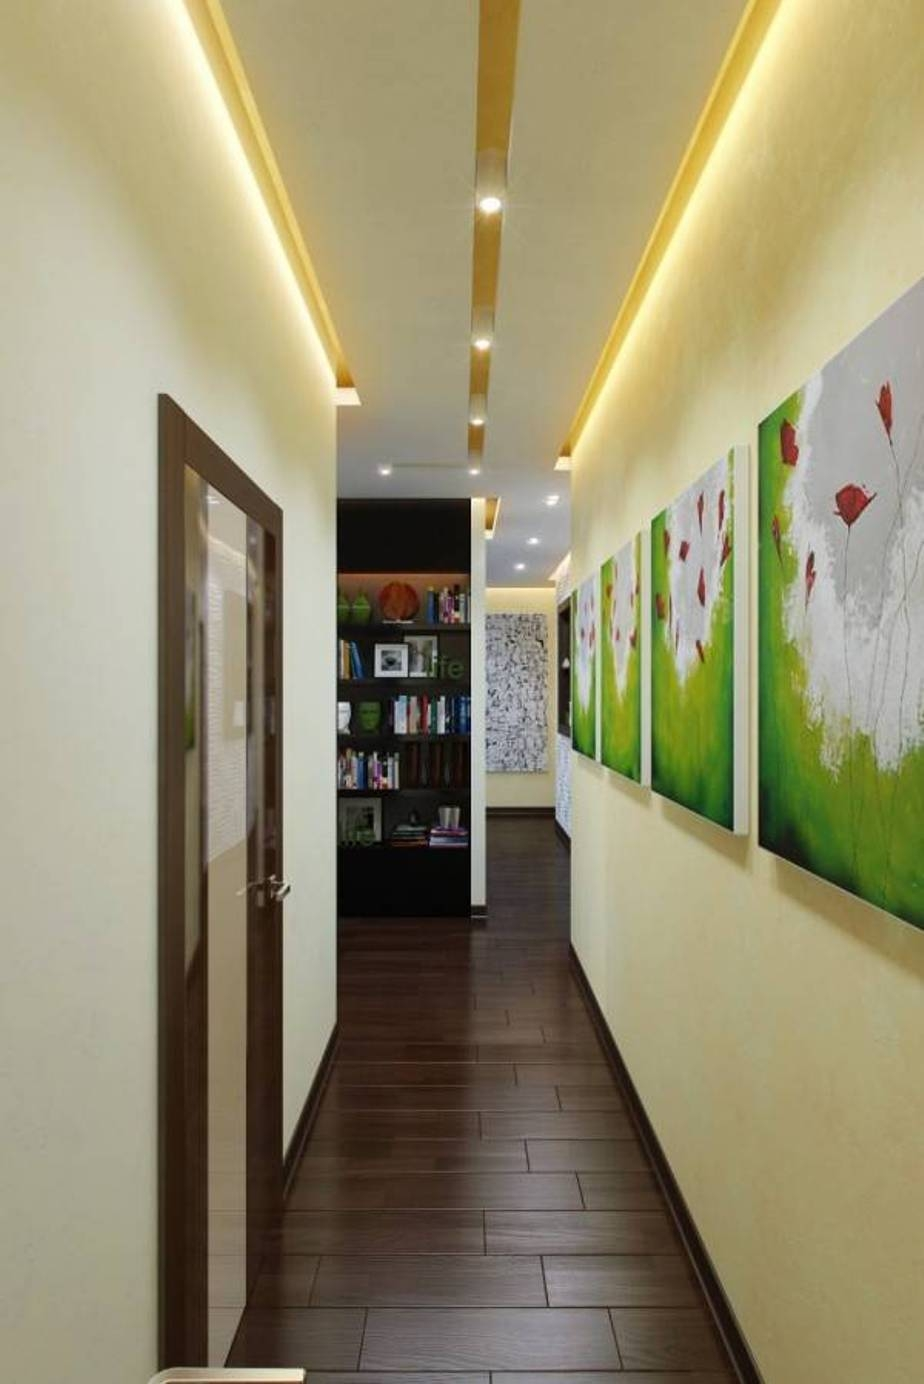 Bright Hallway Colour Ideas With Led Lighting And Wall Art Gallery Regarding Most Popular Wall Art Ideas For Hallways (View 7 of 20)